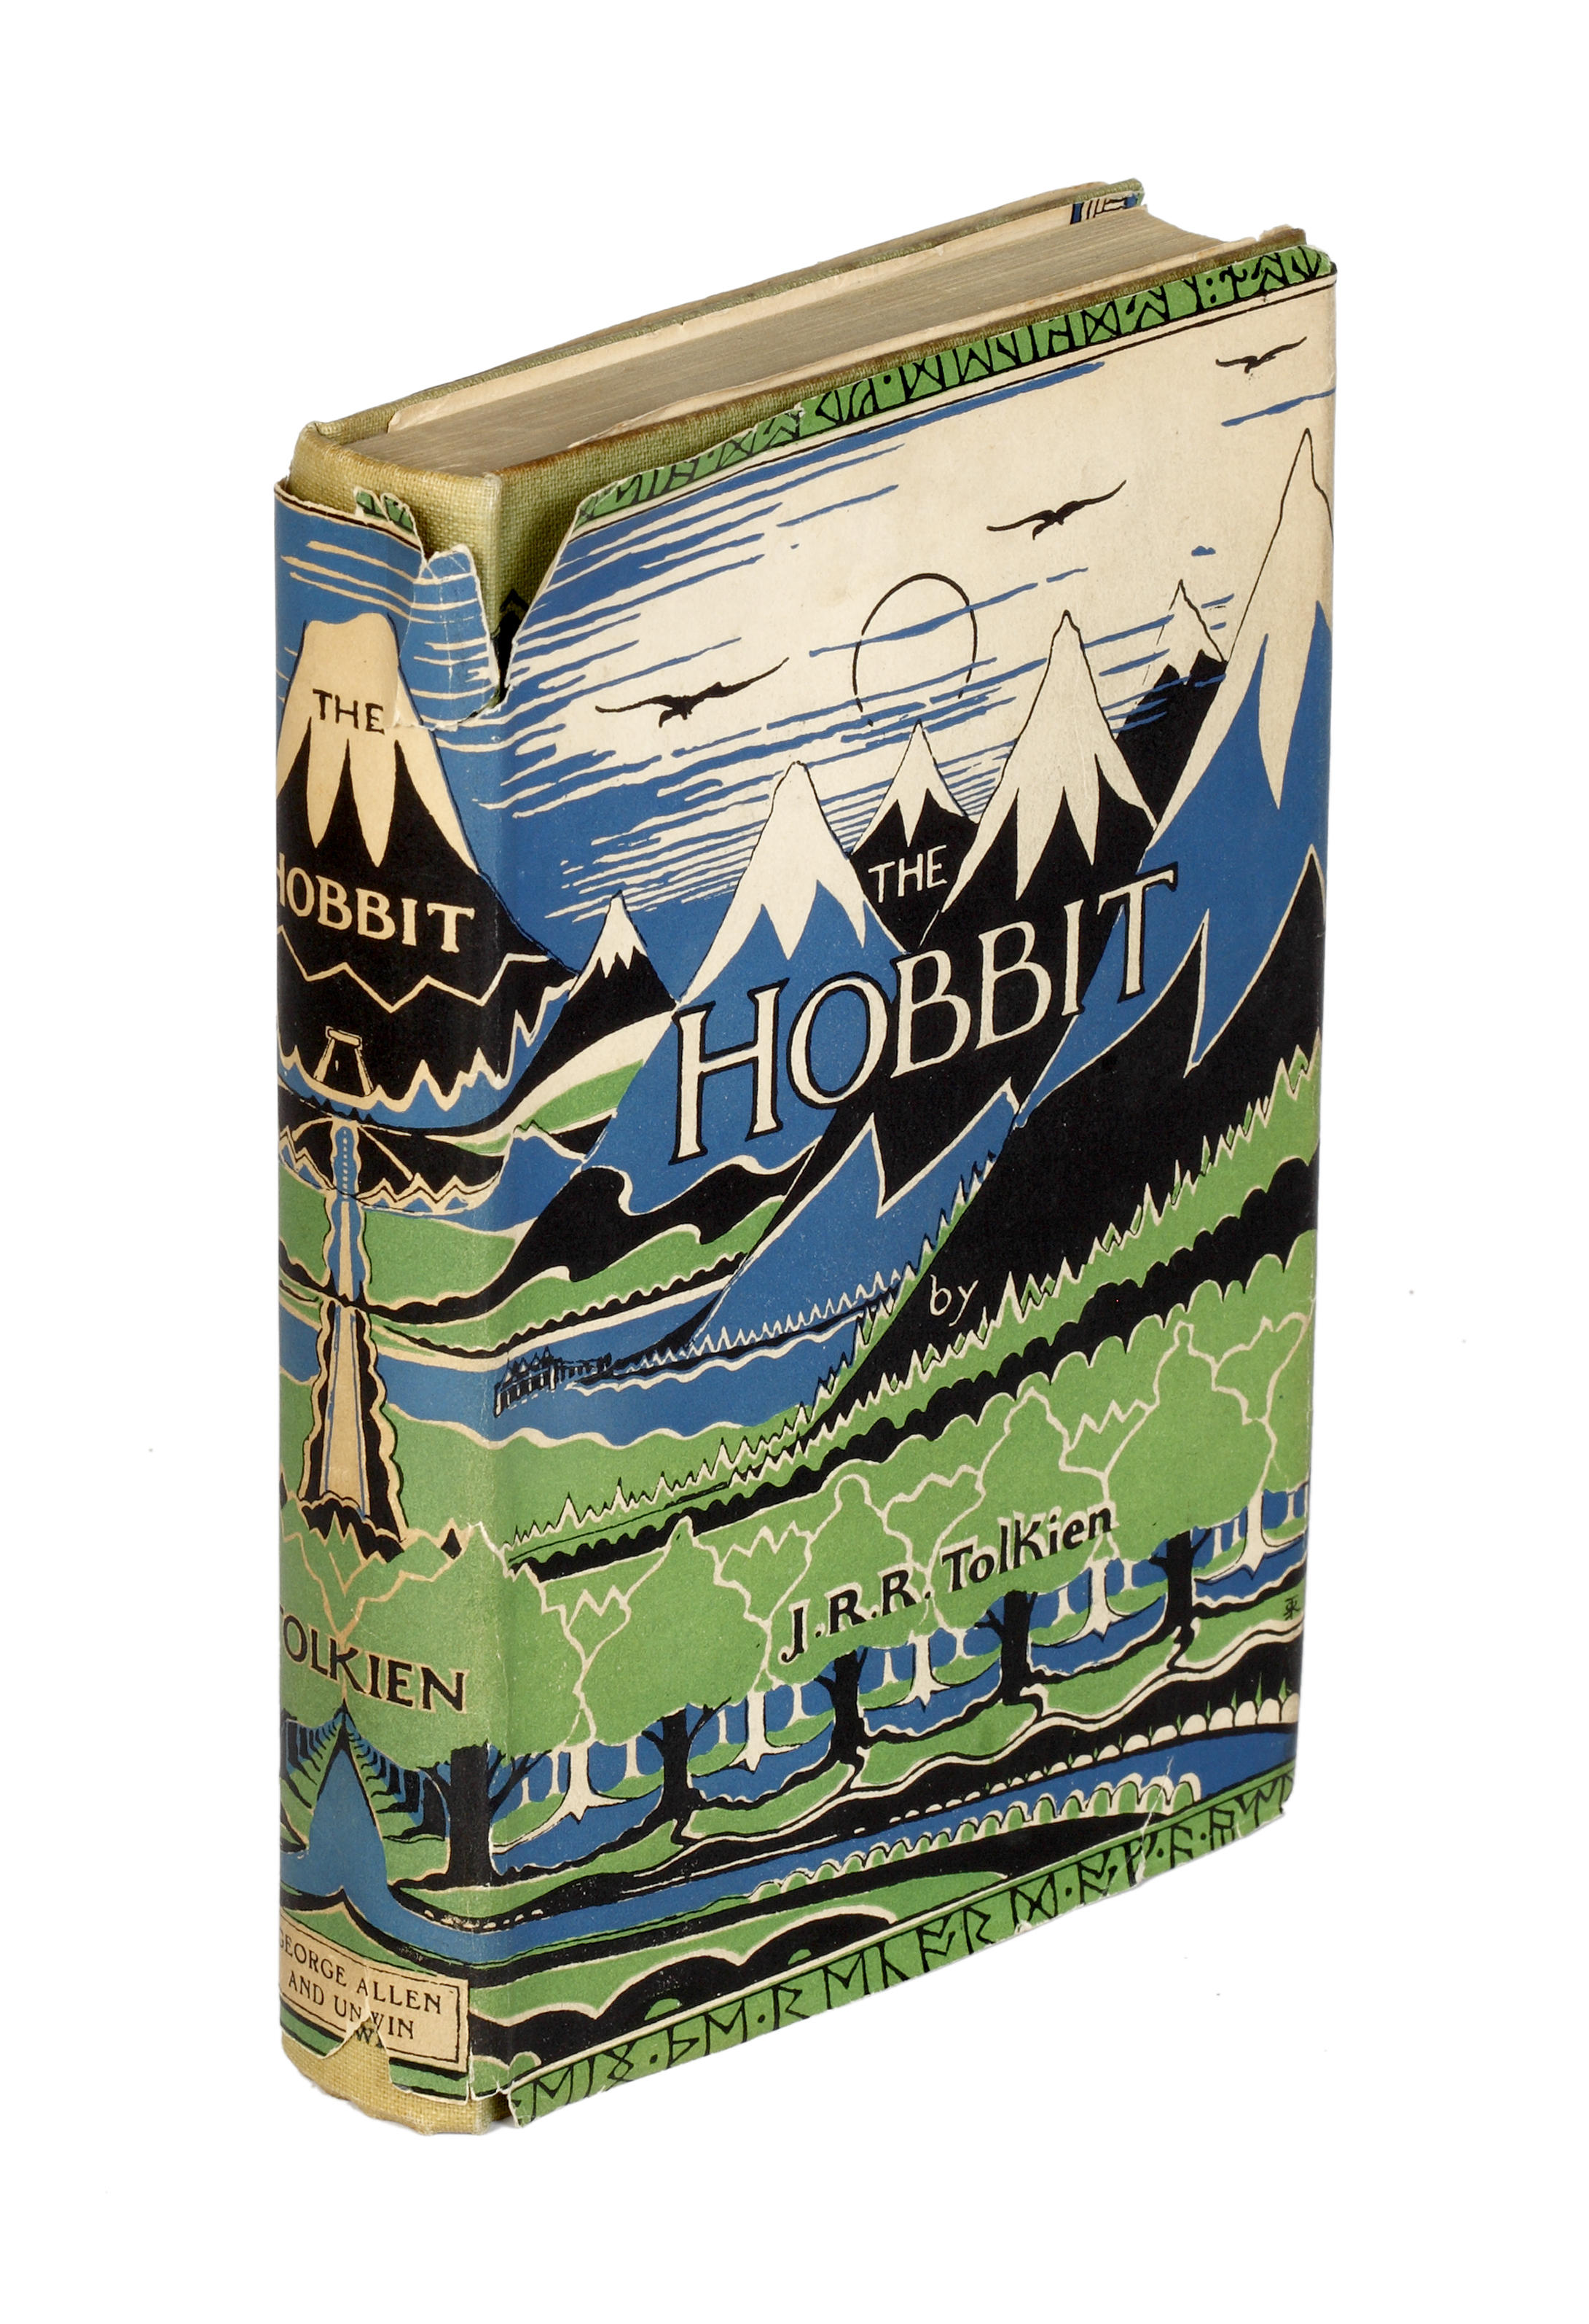 Hobbit Bonhams 20706 433